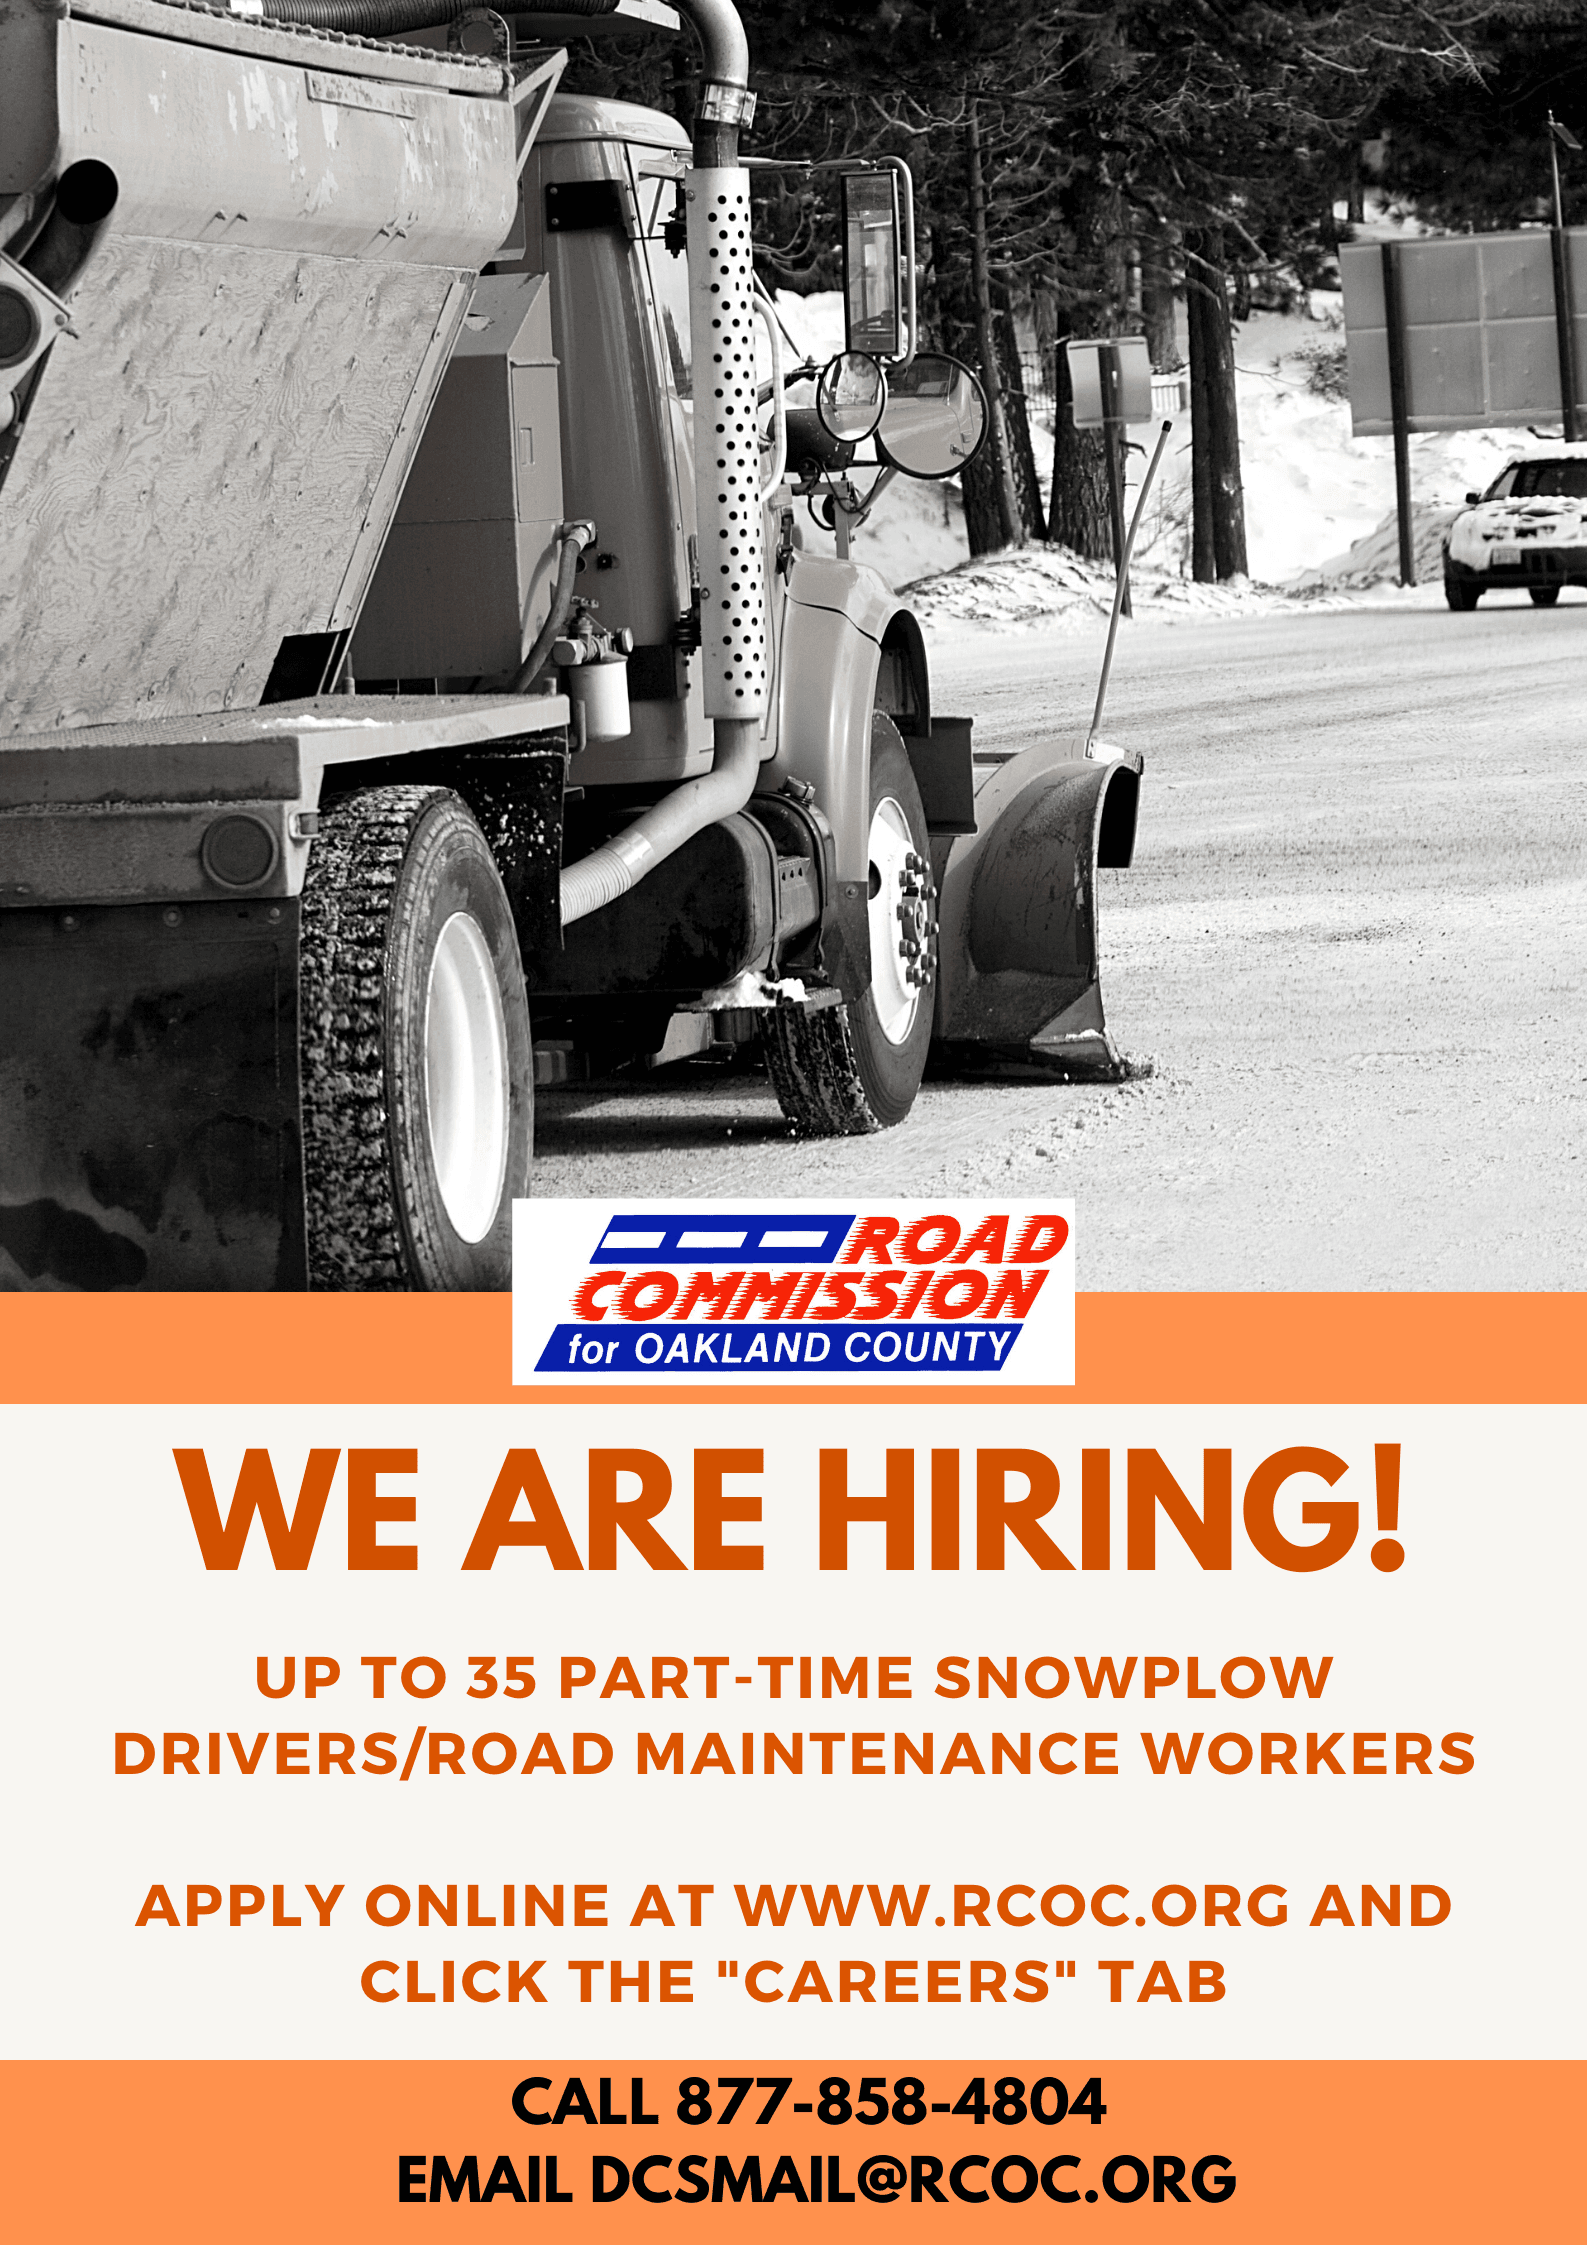 We are hiring part-time snowplow drivers and maintenance workers images